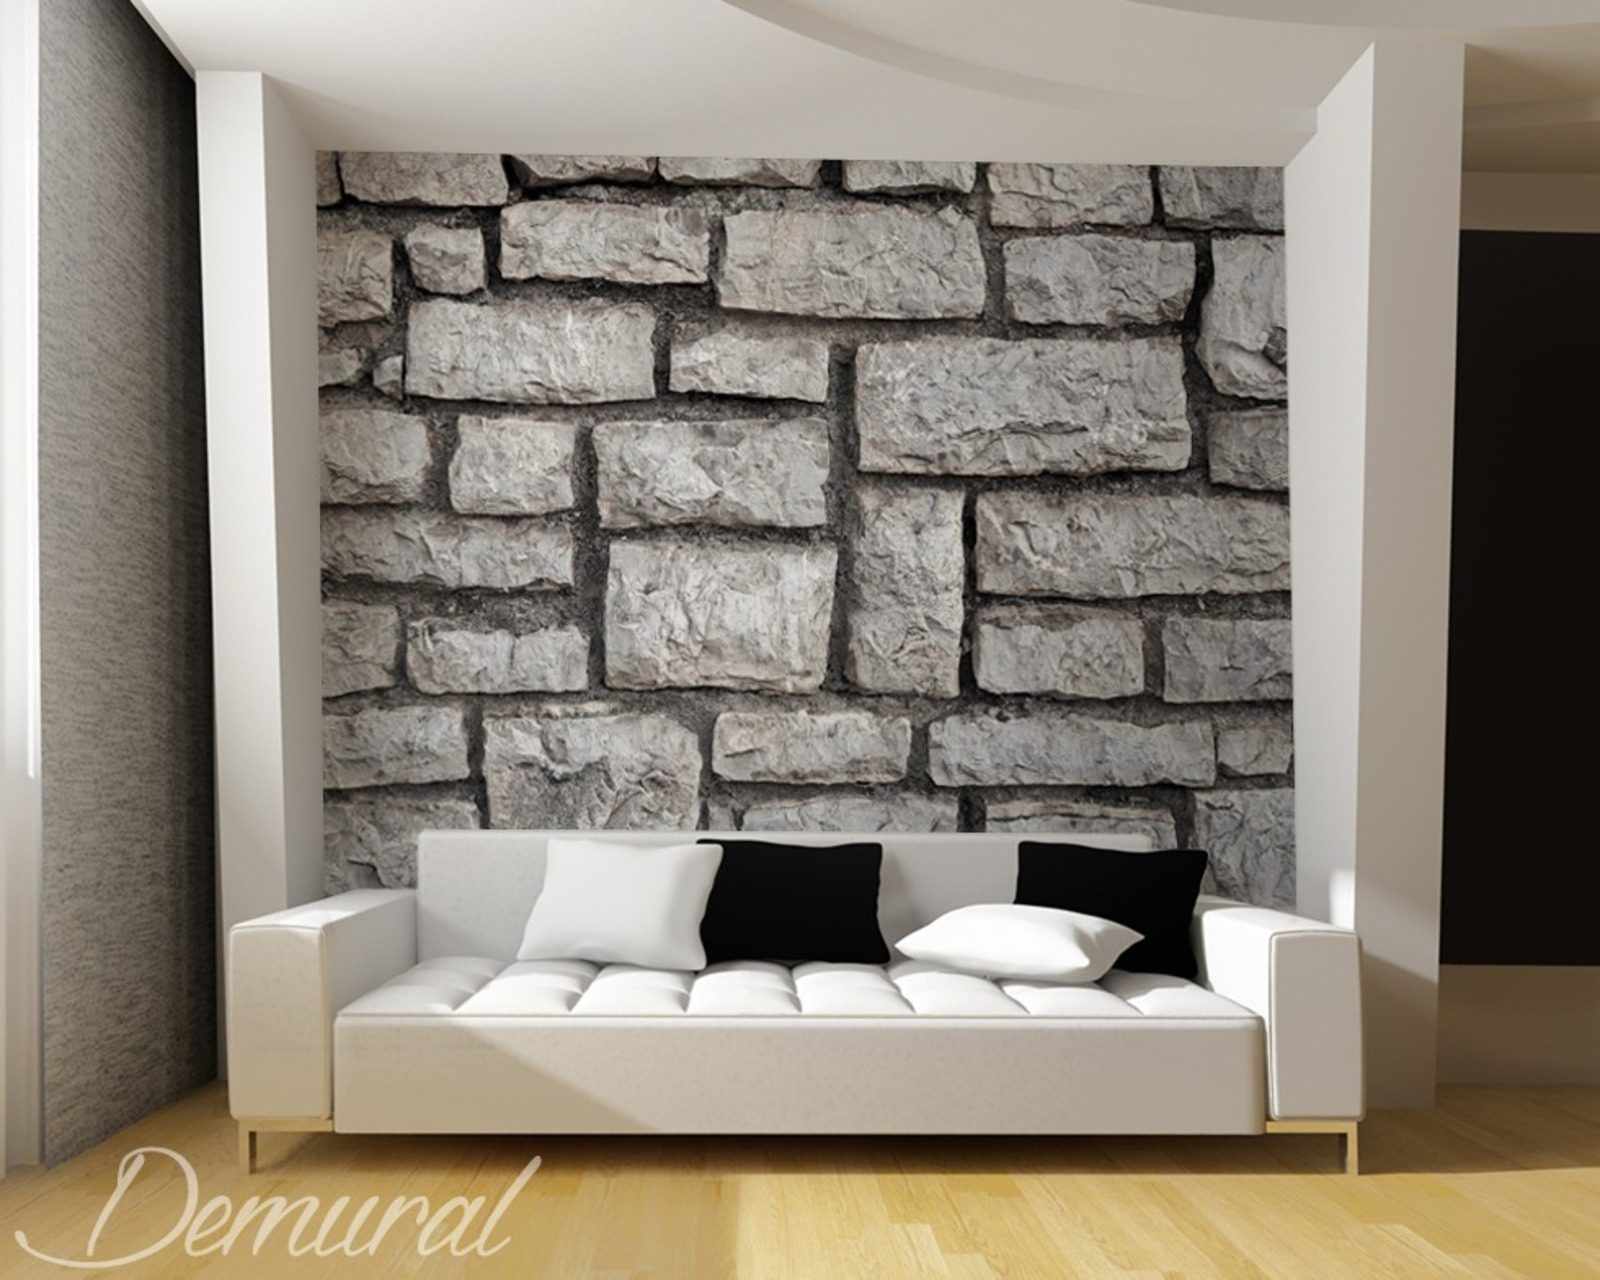 na mur beton fototapety do salonu fototapety demural. Black Bedroom Furniture Sets. Home Design Ideas